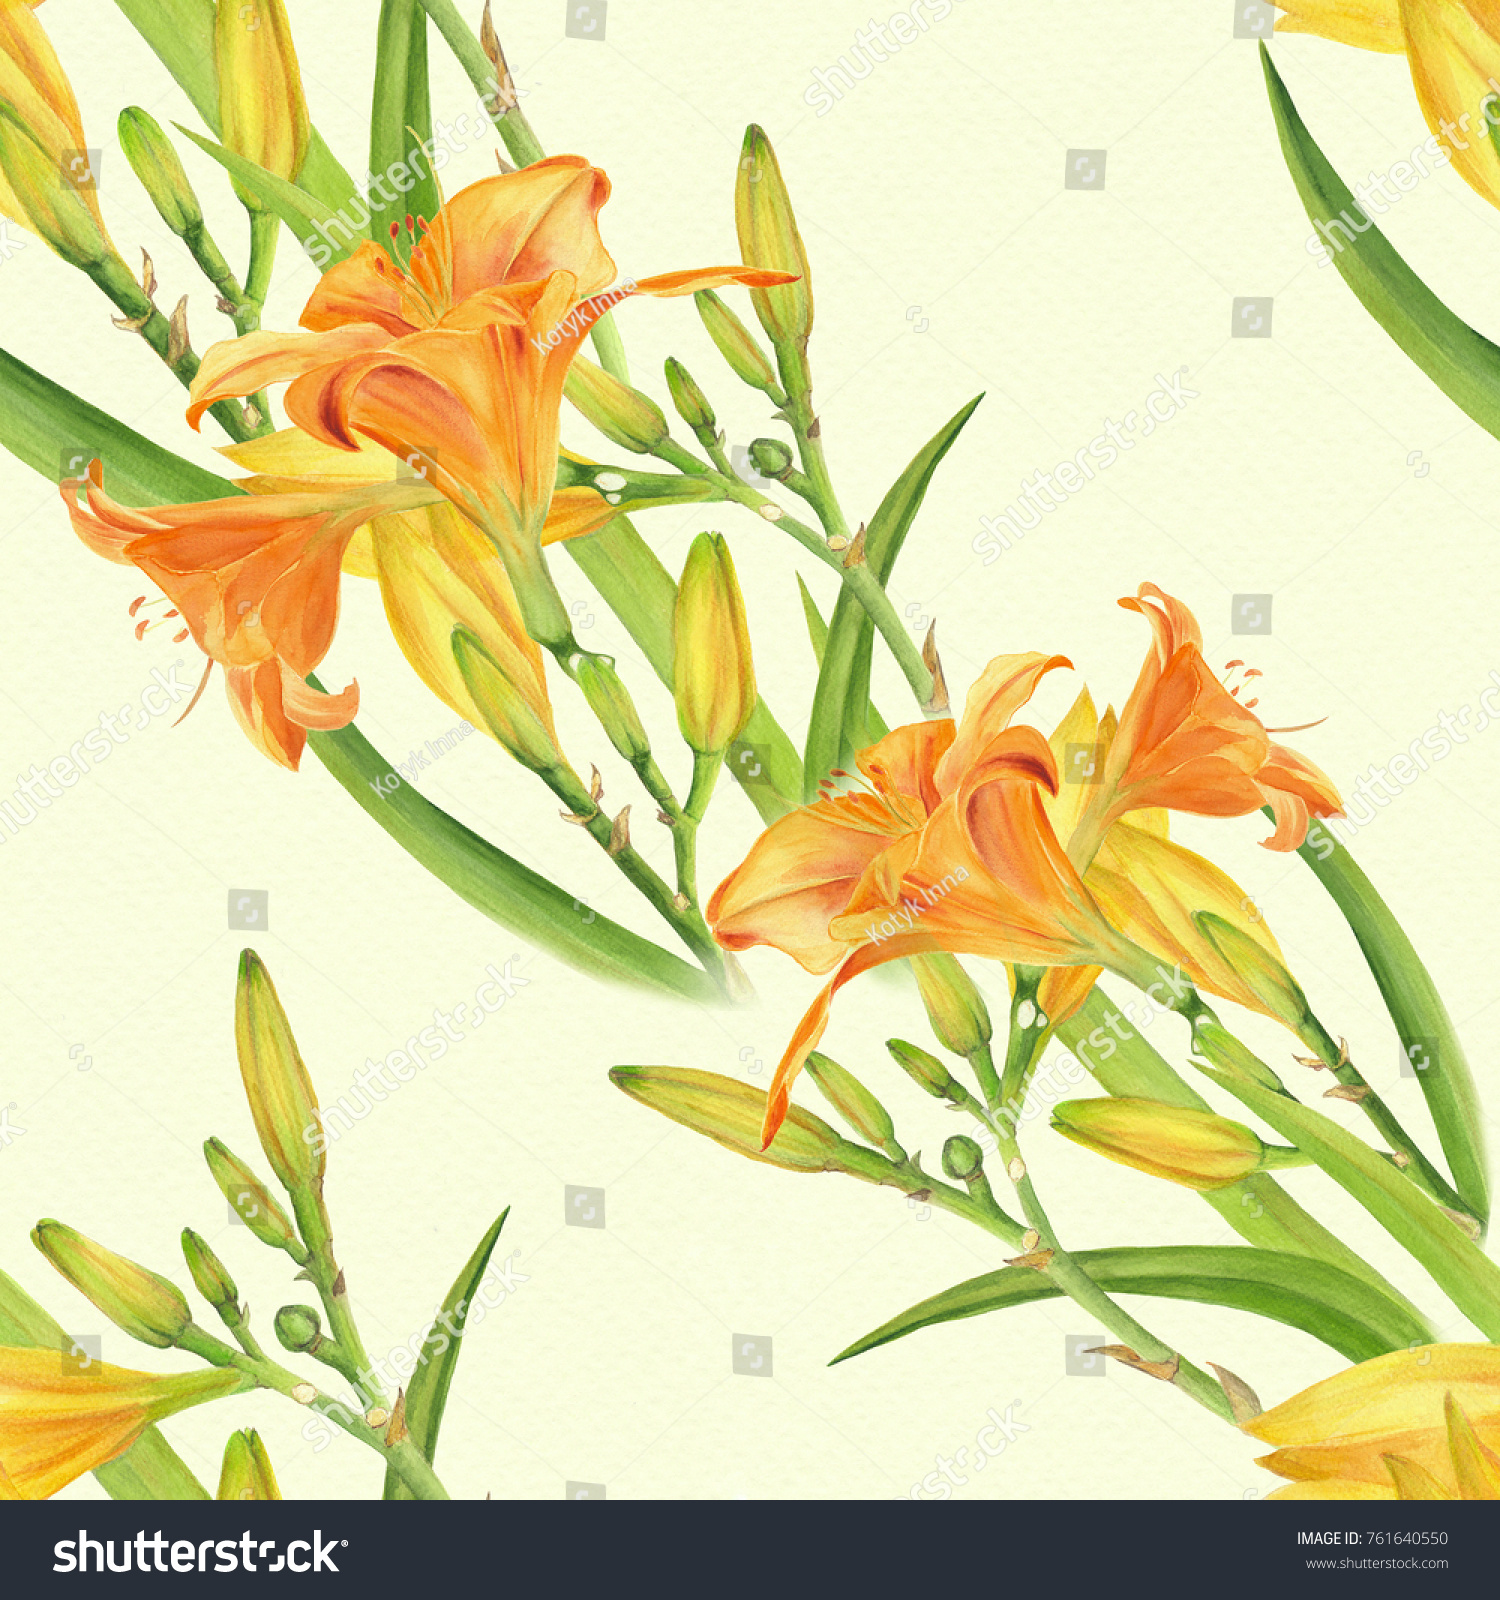 Flowers buds leaves yellow lily watercolor stock illustration flowers buds and leaves of a yellow lily watercolor floral motifs seamless izmirmasajfo